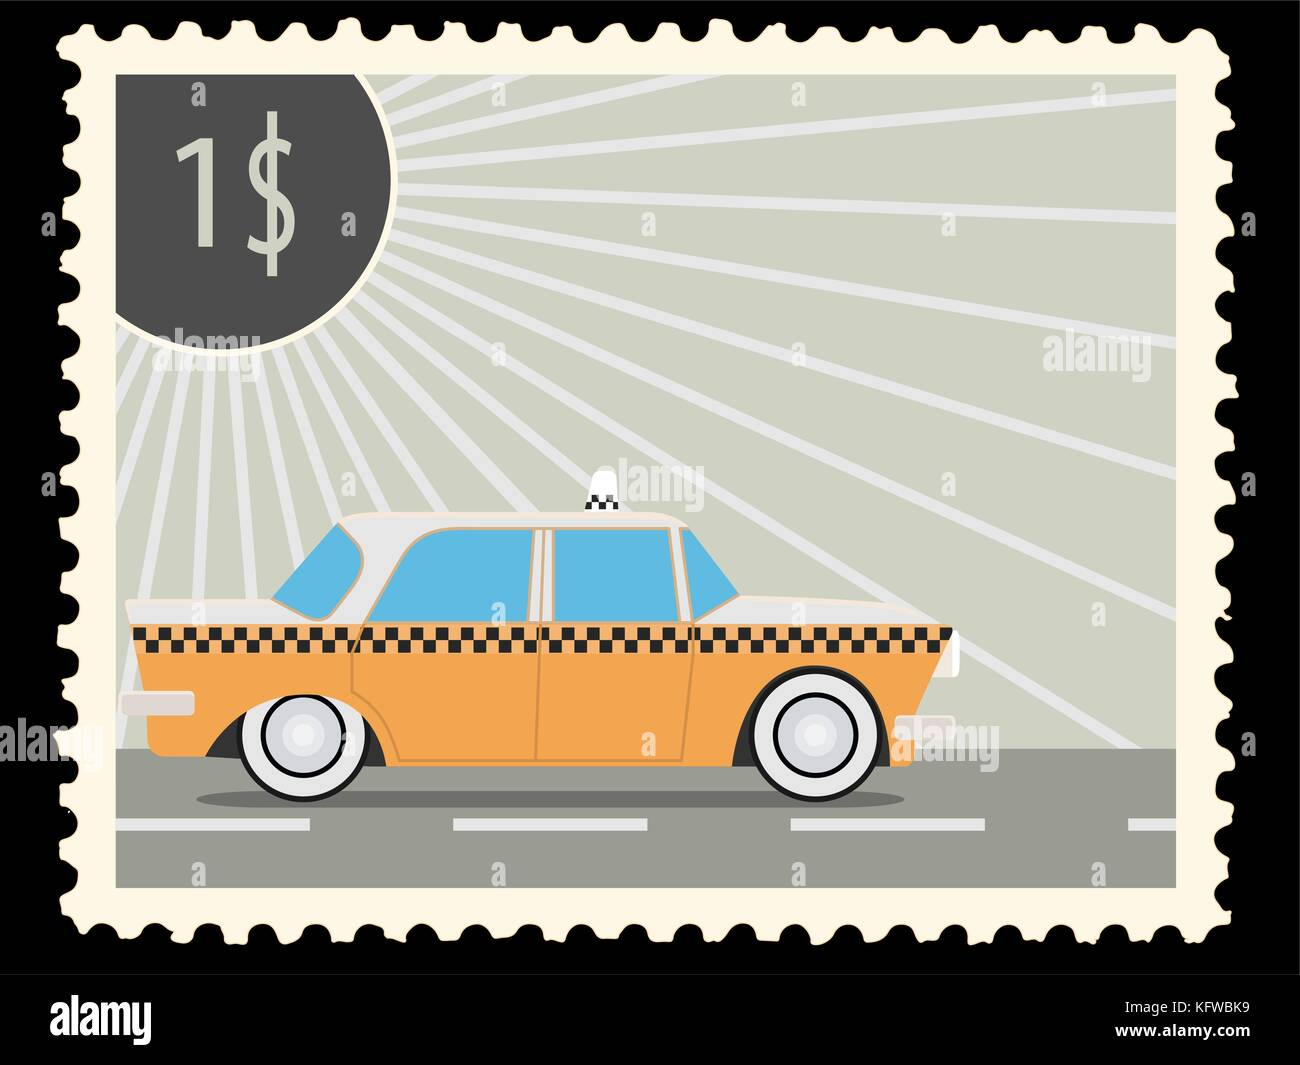 Timbre-poste avec retro voitures taxi. vector illustration Photo Stock